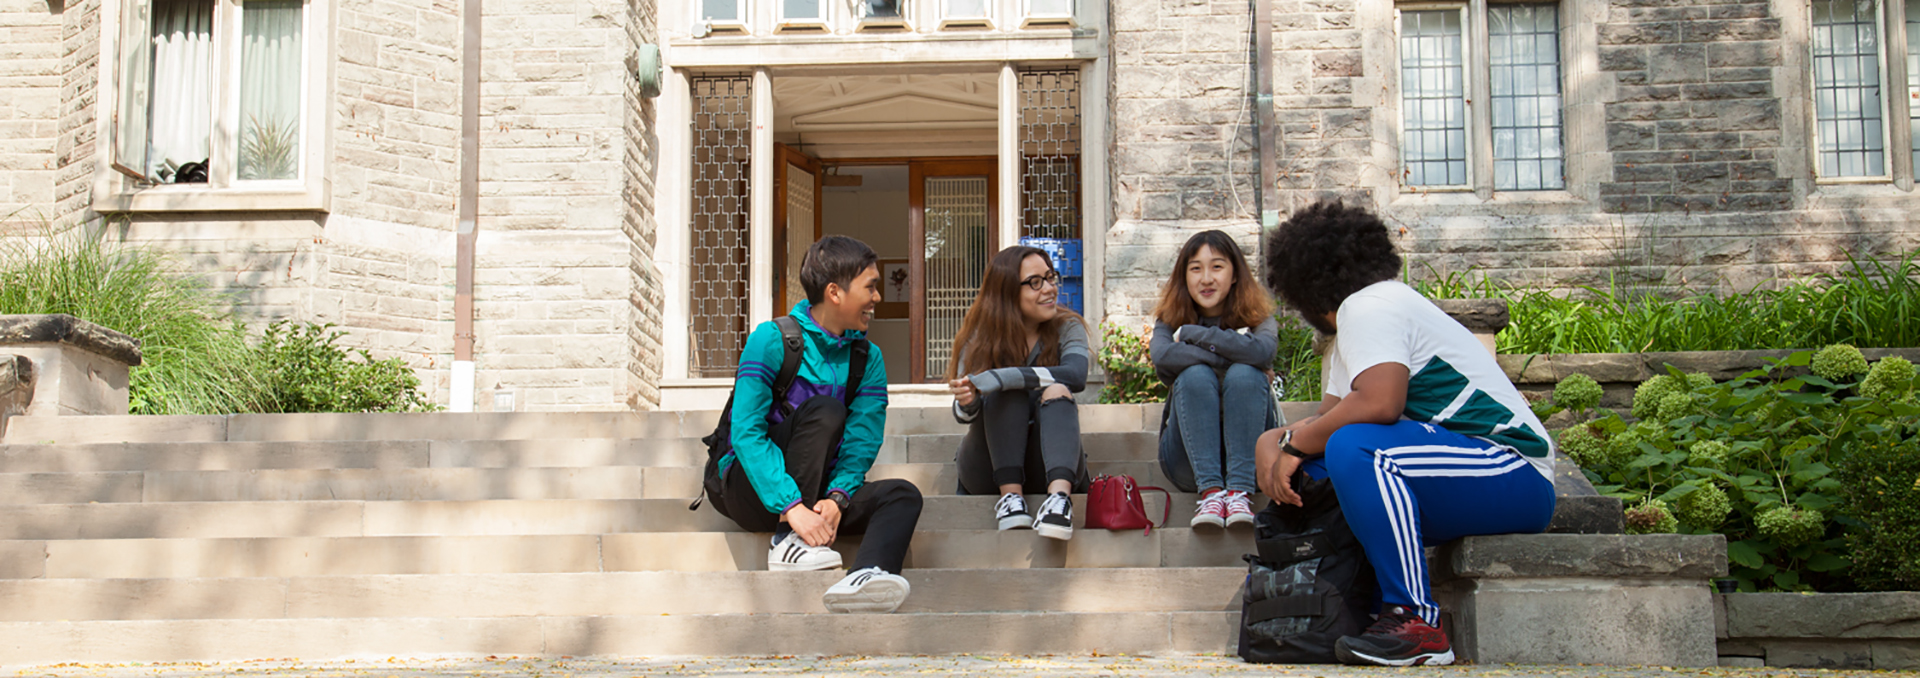 Students sitting on the stone steps in the Quad